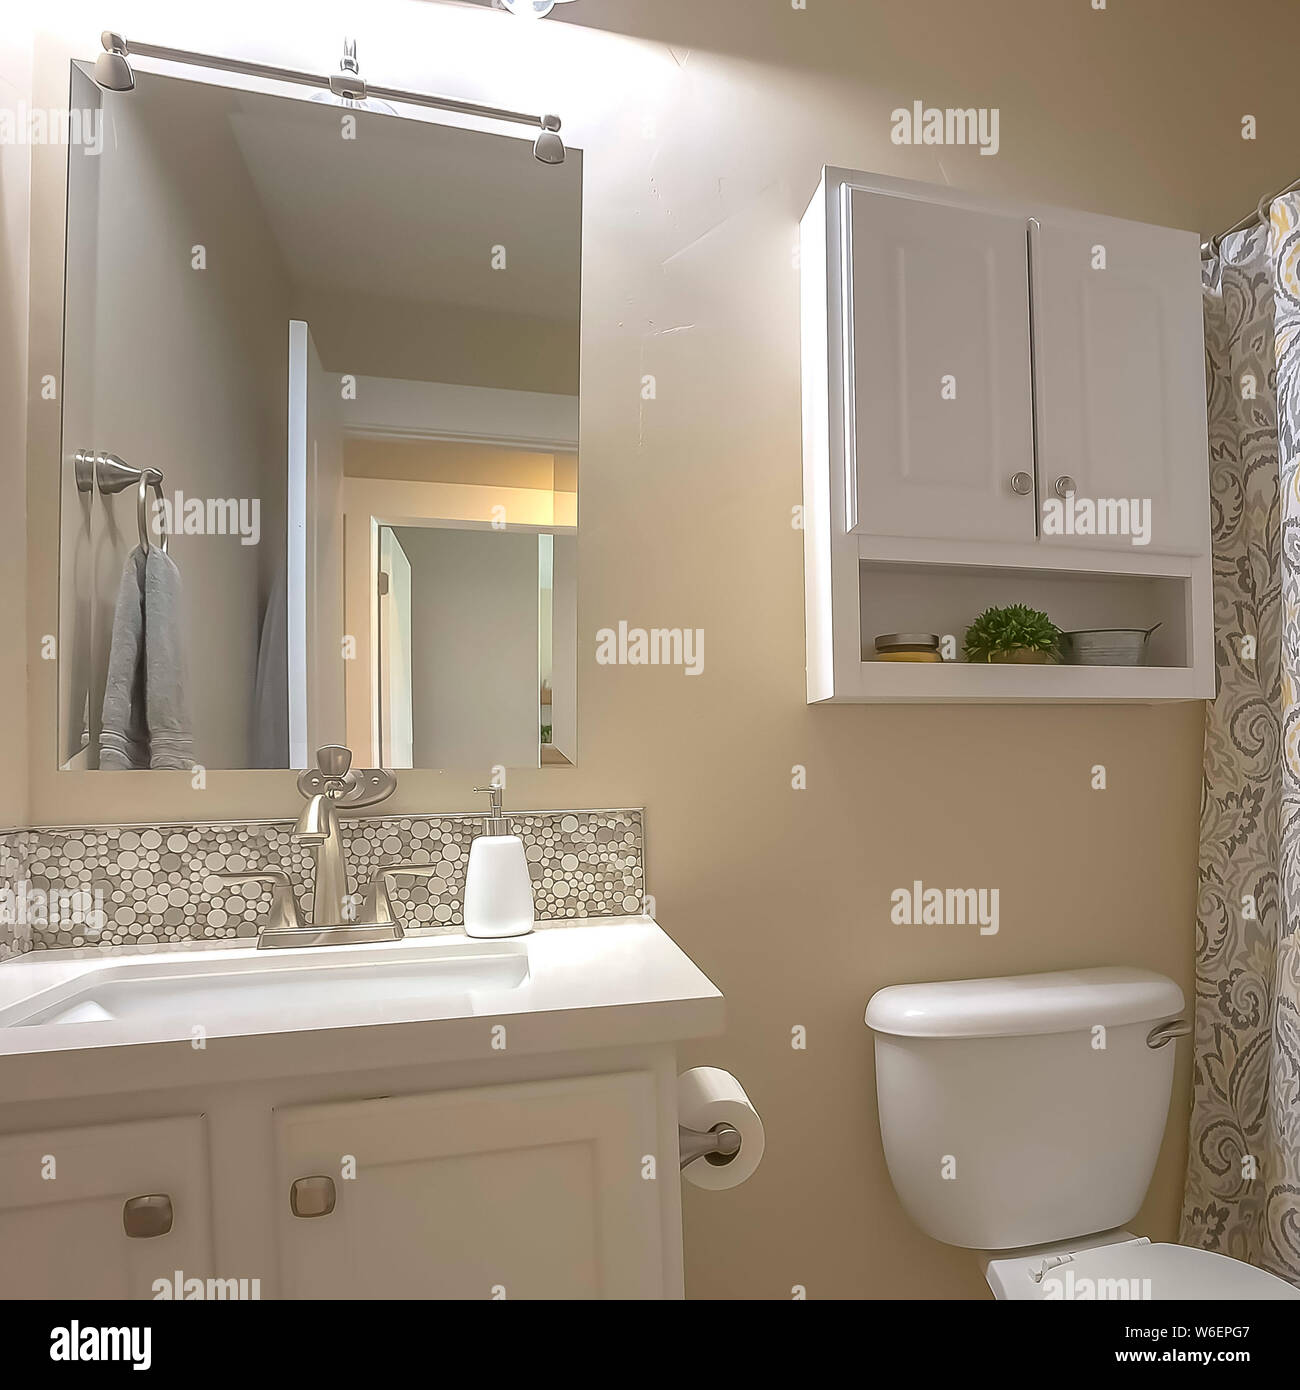 Square Toilet Vanity Mirror And Cabinet Inside Bathroom With Beige Wall And Tile Floor Stock Photo Alamy